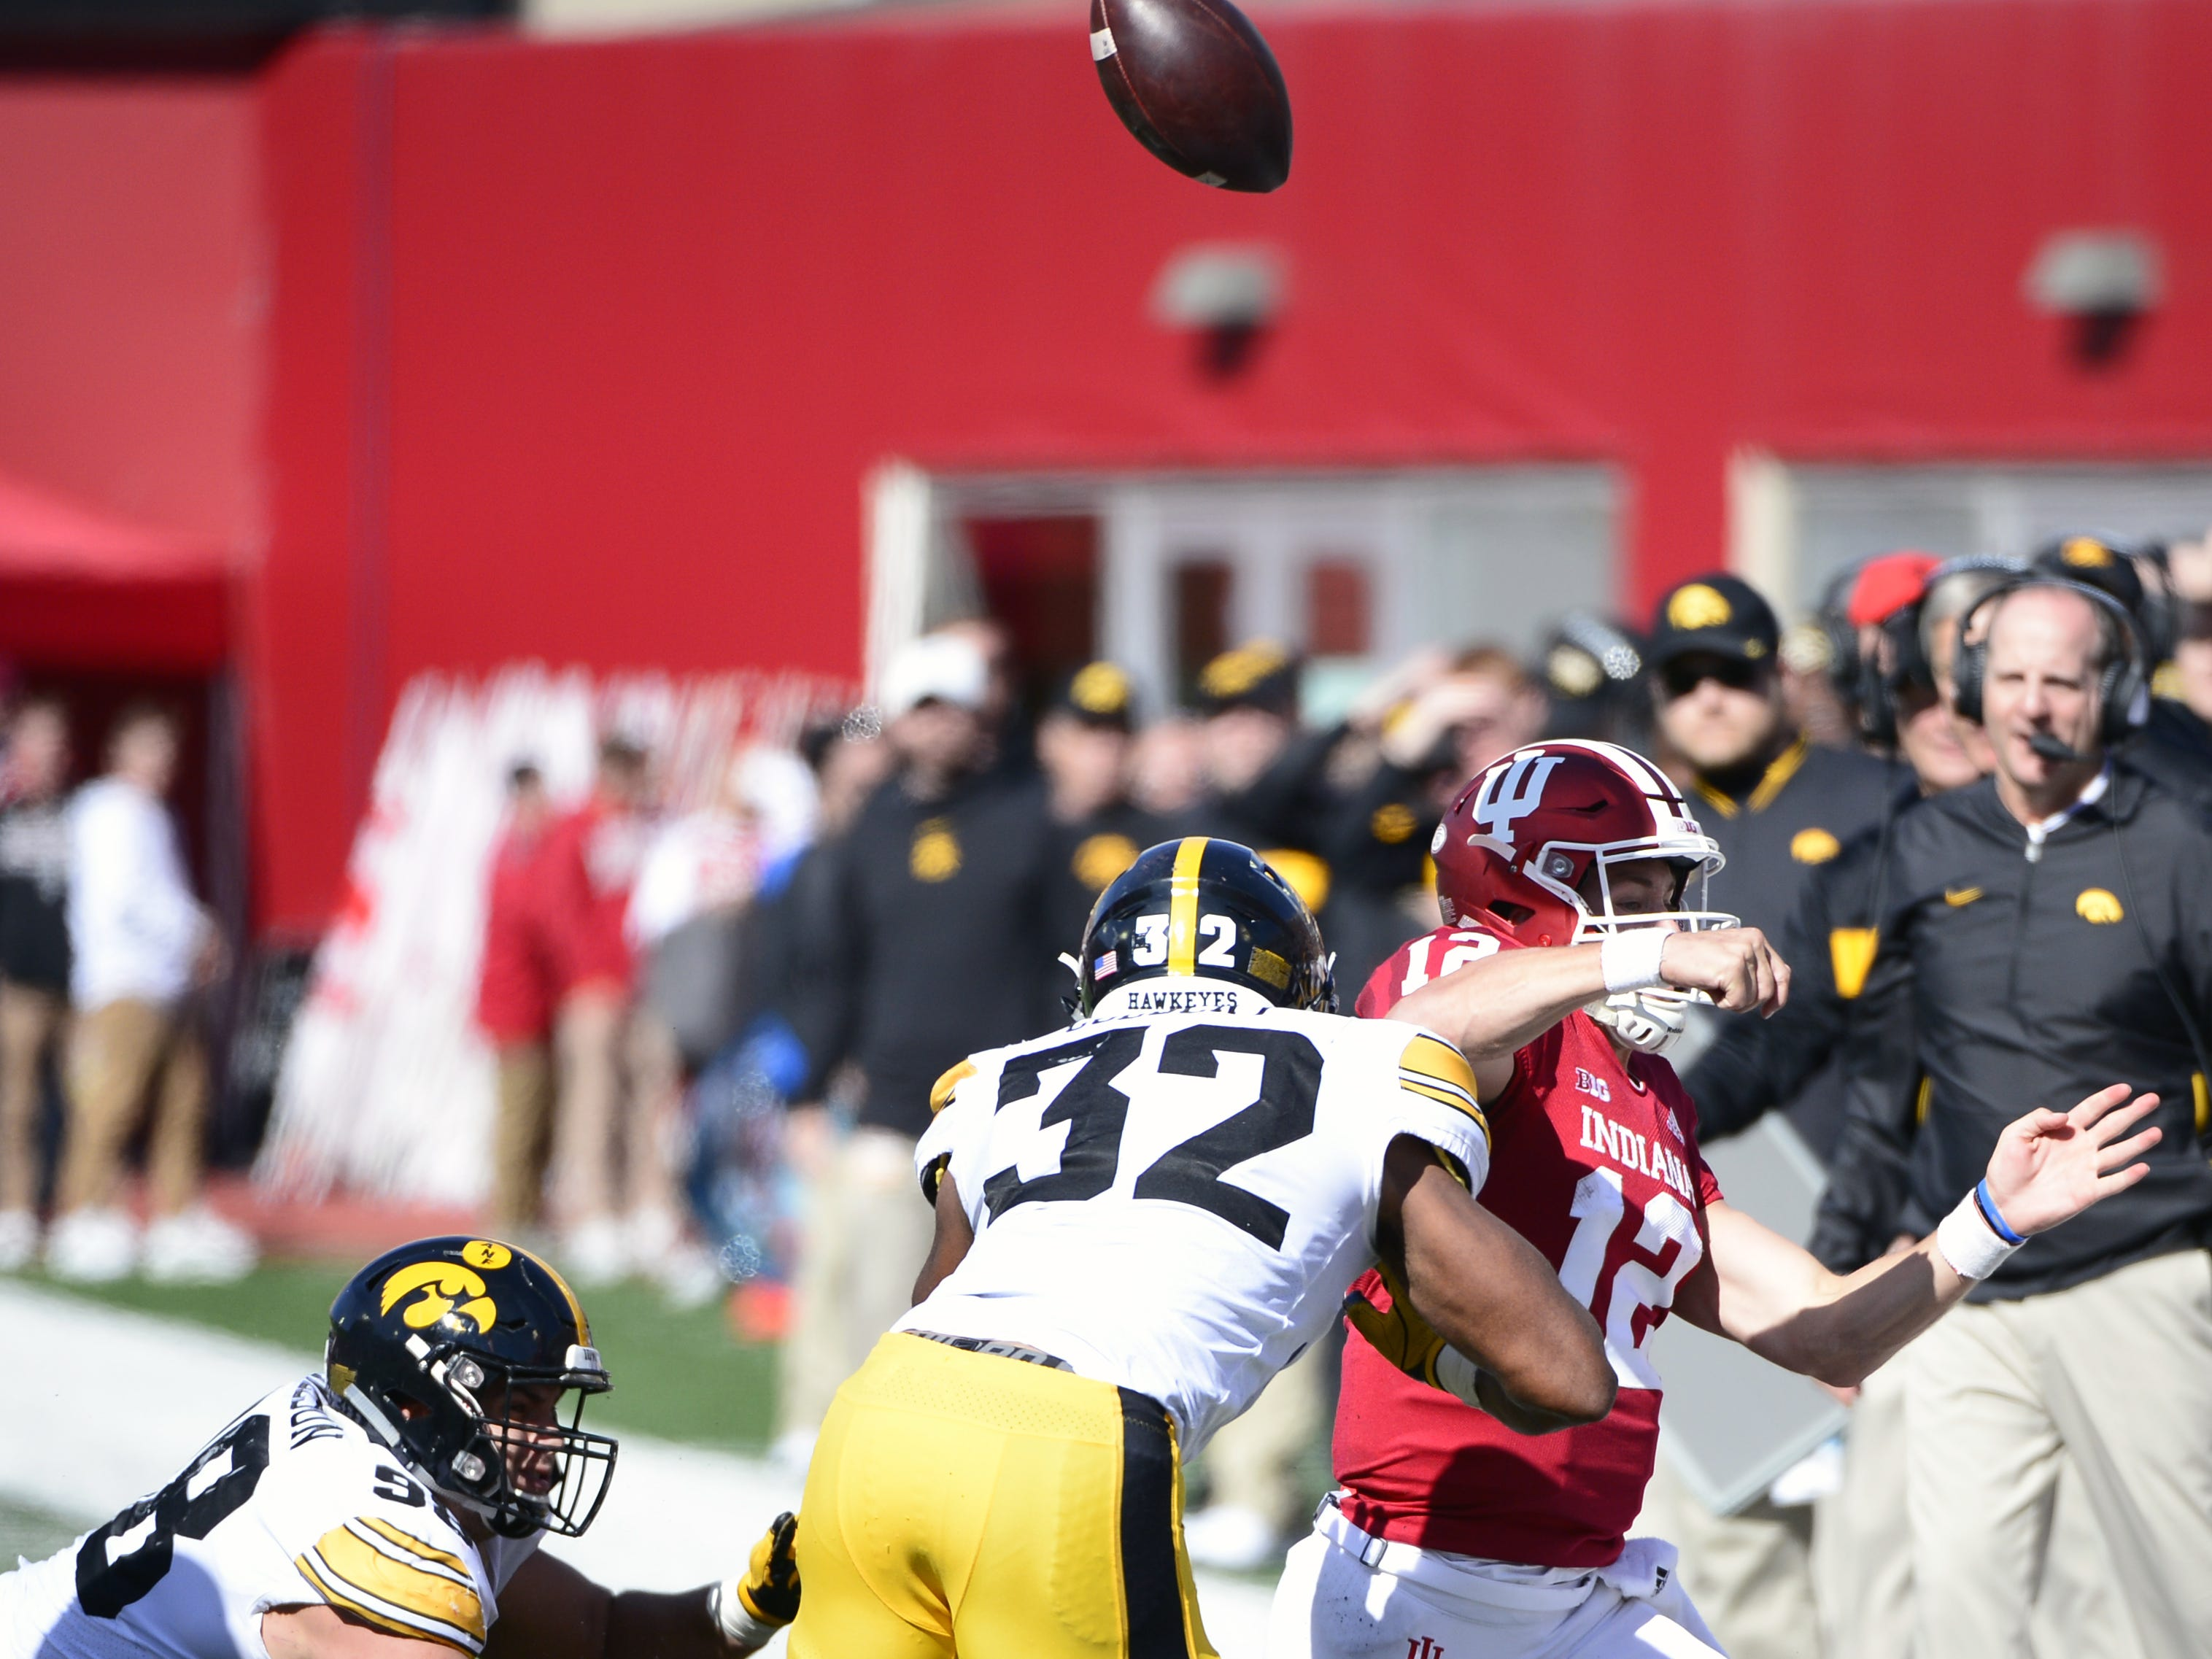 Indiana Hoosiers quarterback Peyton Ramsey (12) gets rid of the ball as he is tackled during the game against Iowa at Memorial Stadium in Bloomington, Ind., on Saturday, Oct. 13, 2018.